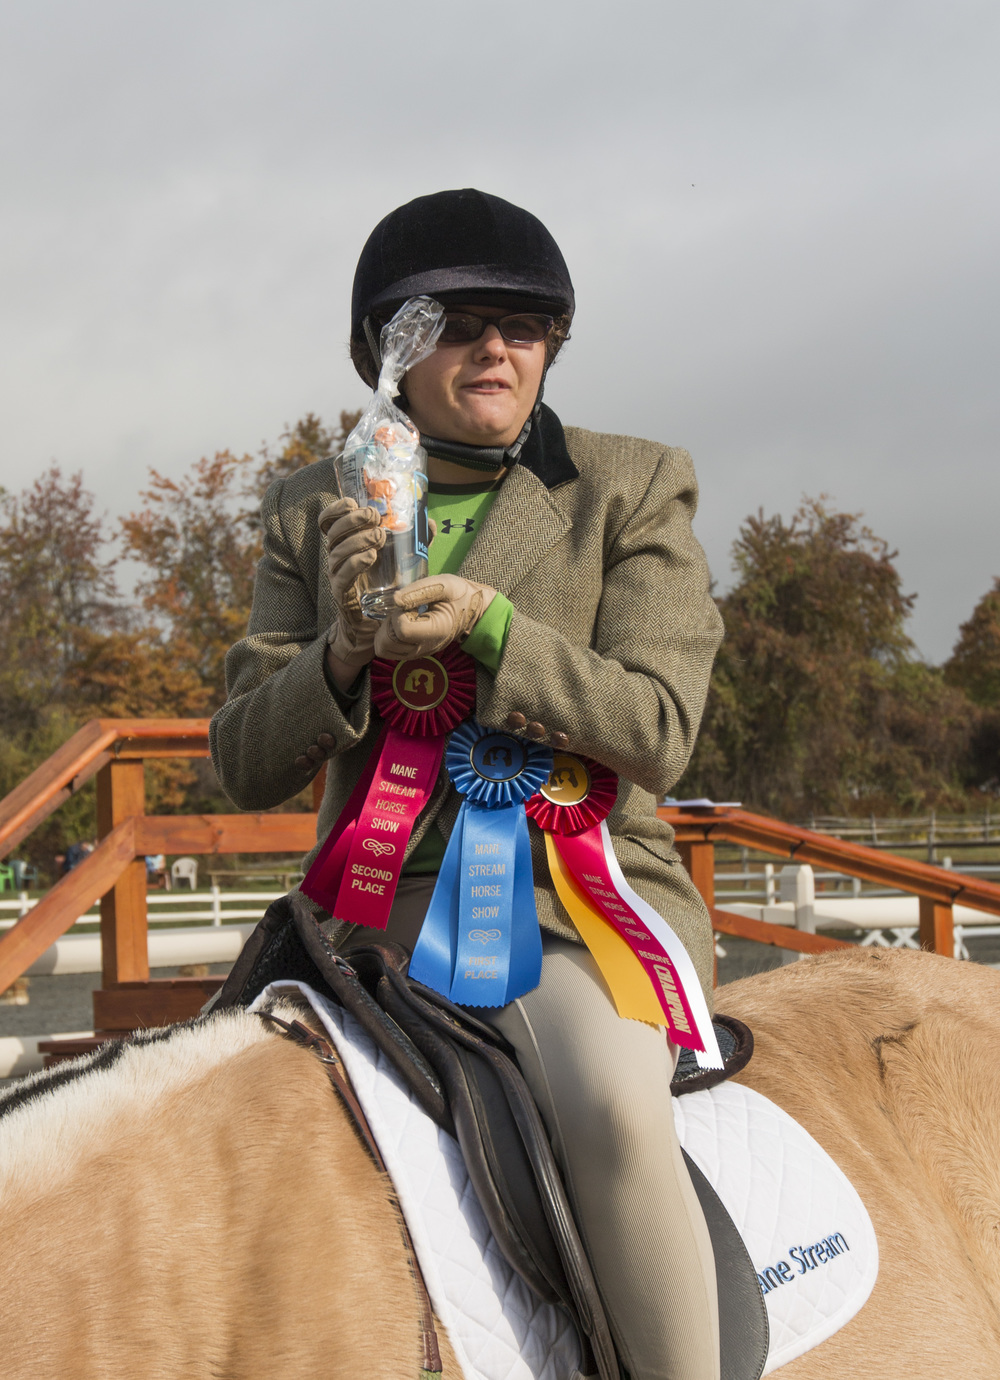 Check out the 2015 Horse Show Gallery